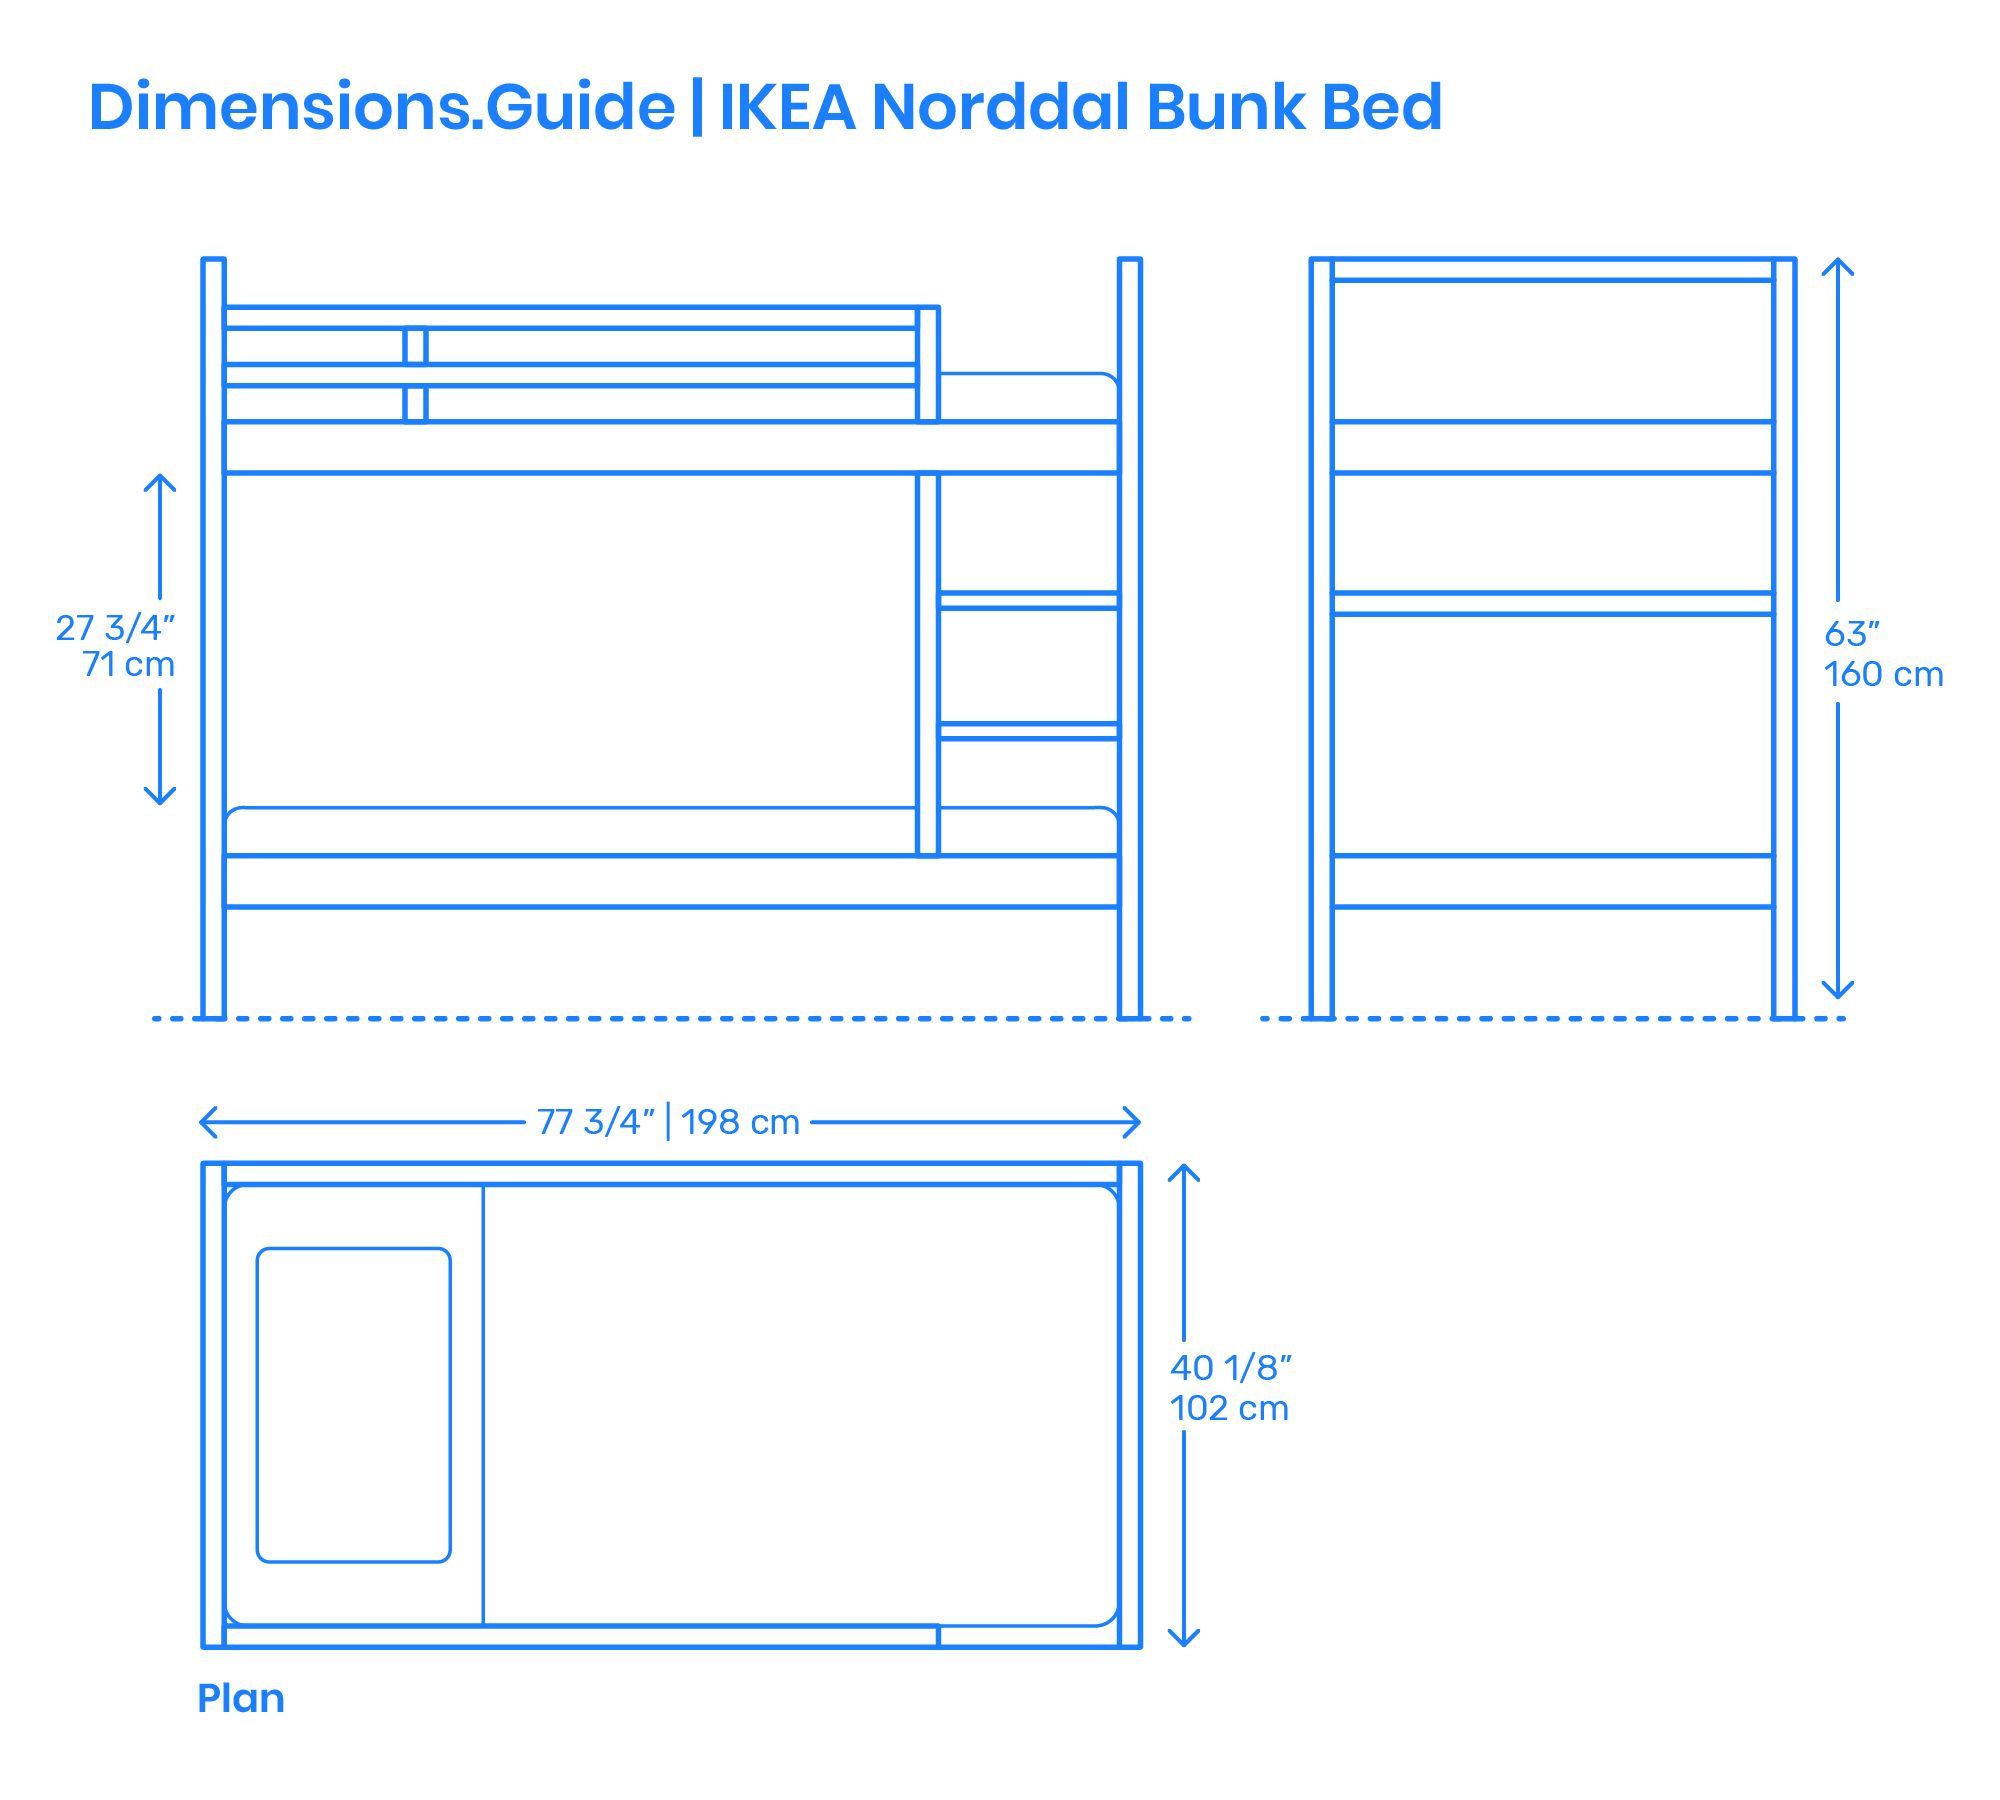 Ikea Norddal Bunk Bed Ikea Mydal Bunk Beds Bed Dimensions